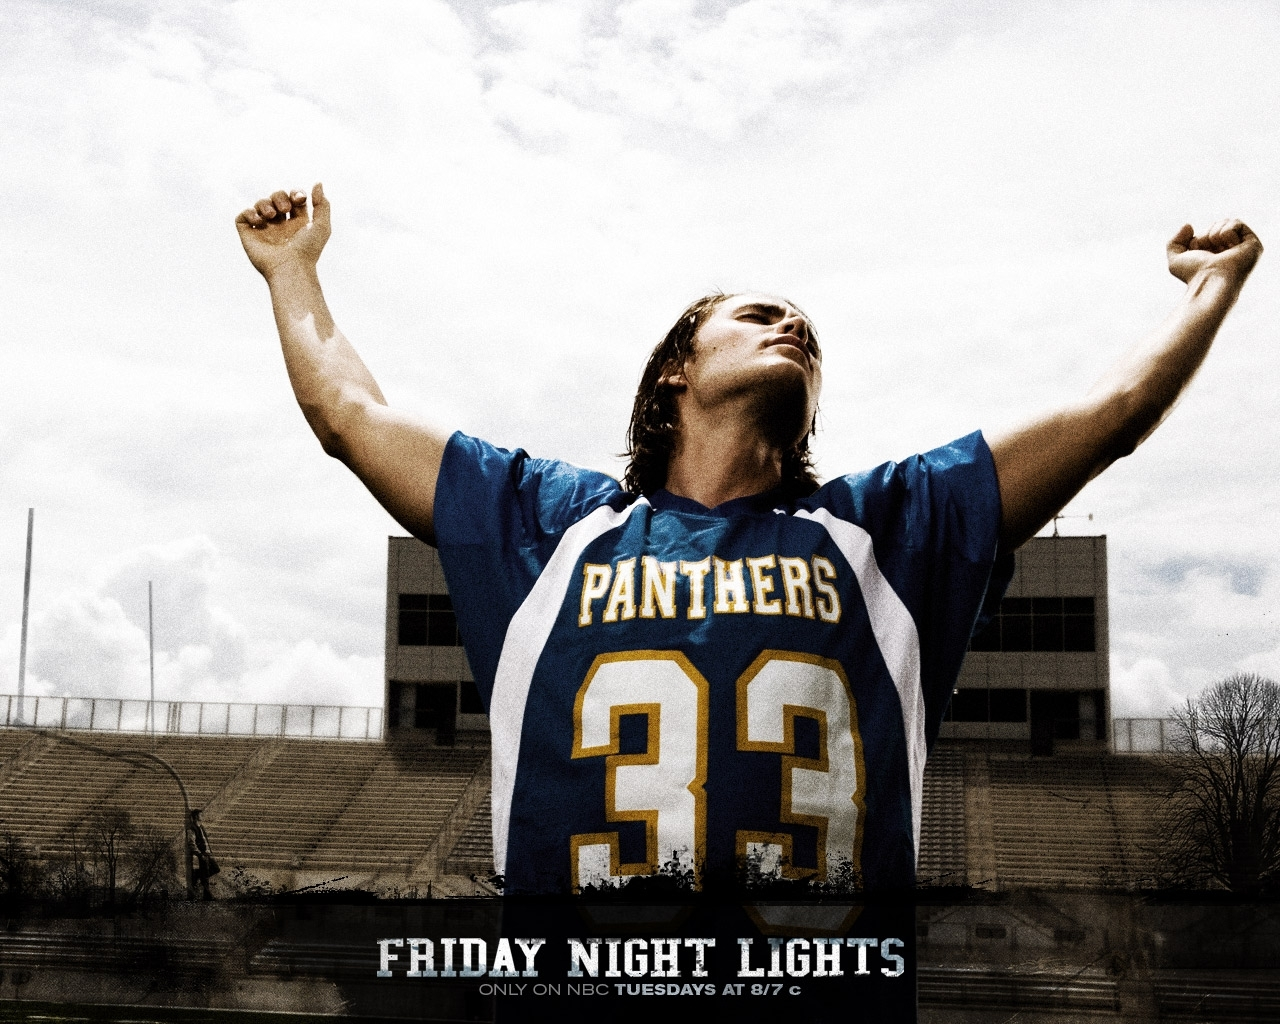 15 friday night lights fonds d'écran hd | arrière-plans - wallpaper